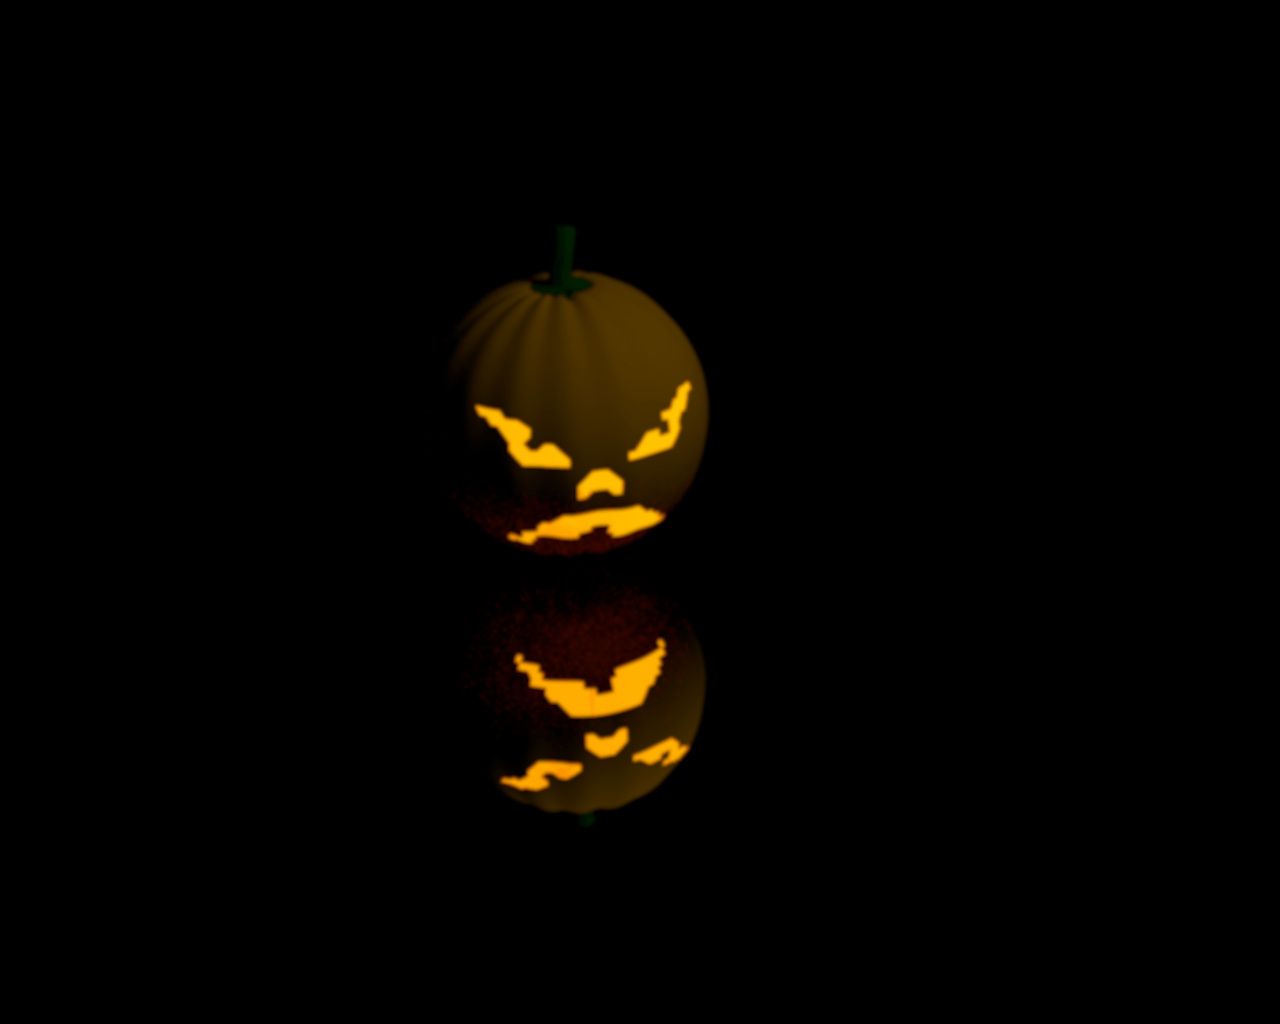 Wallpaper 3d Anime Calabaza De Halloween Wallpaper Piziadas Gr 225 Ficas